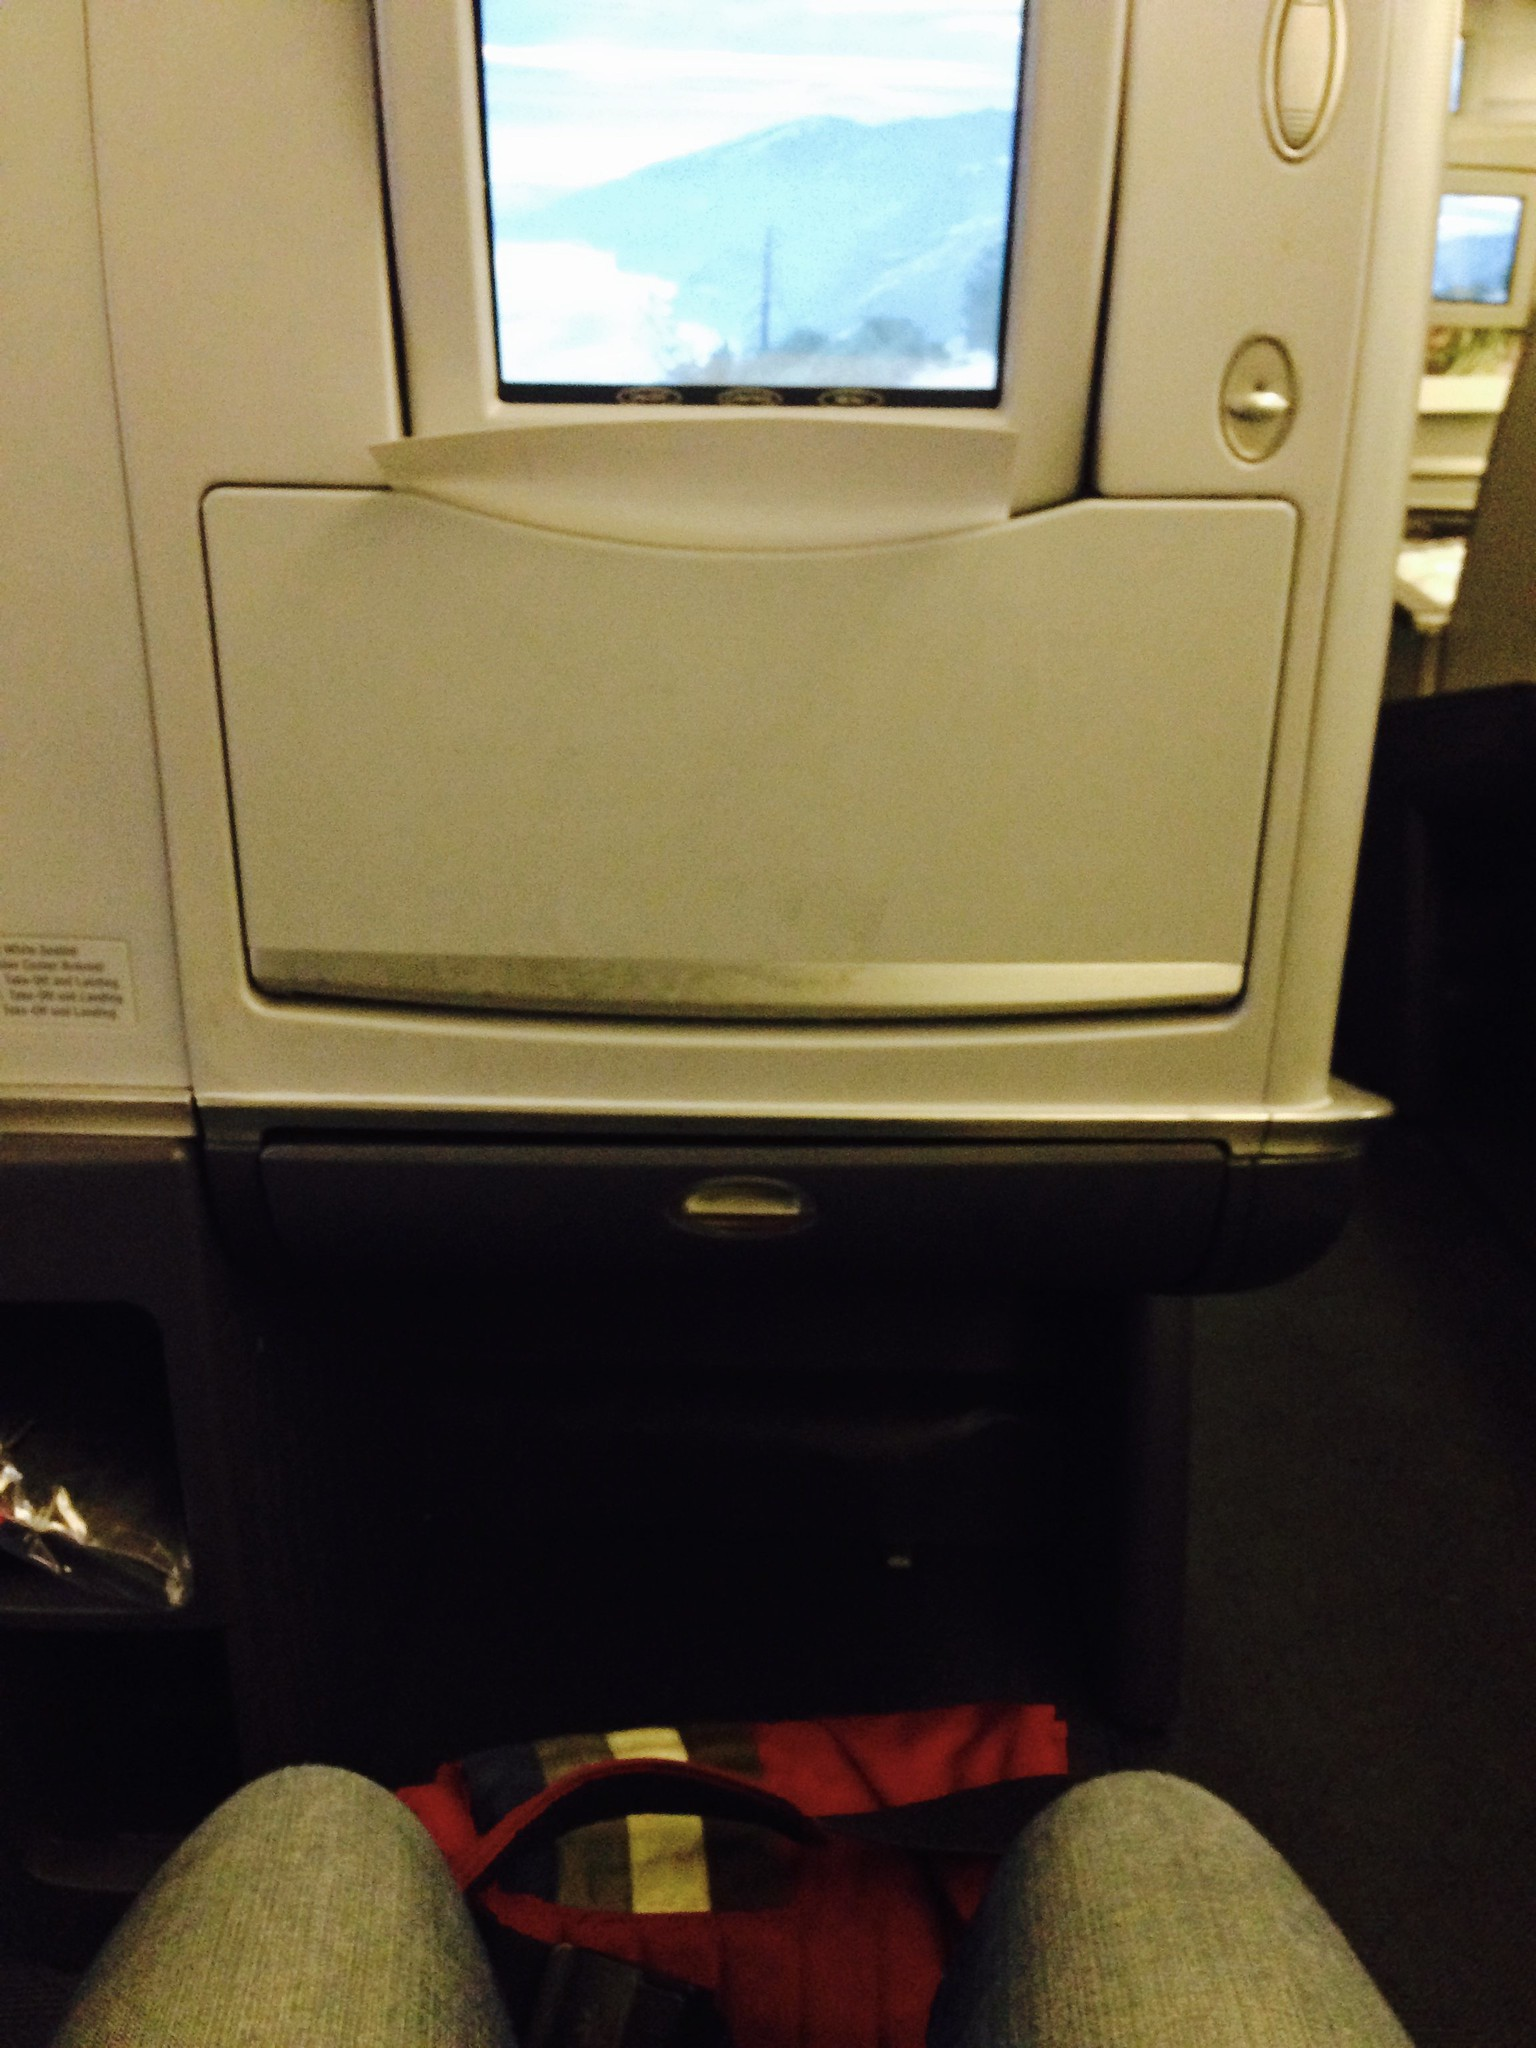 AA37 Madrid - Dallas (MAD - DFW) Business Class